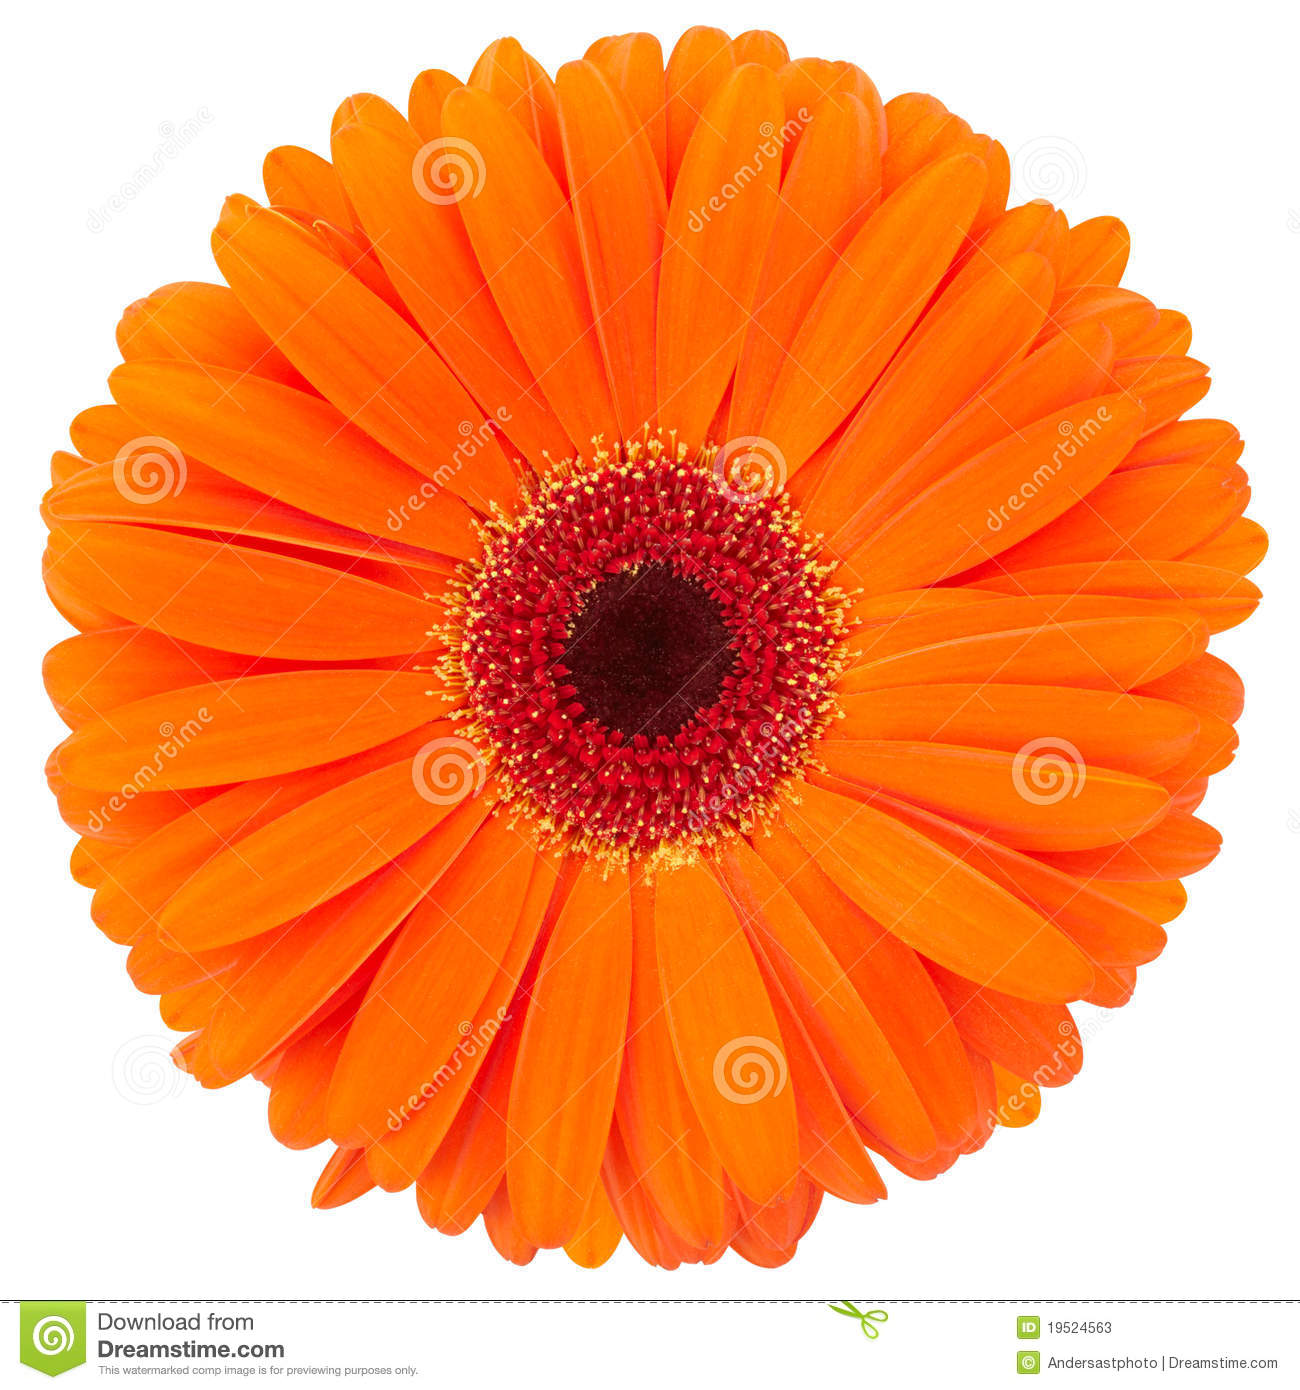 Orange gerber daisy flower isolated on white, clipping path included.